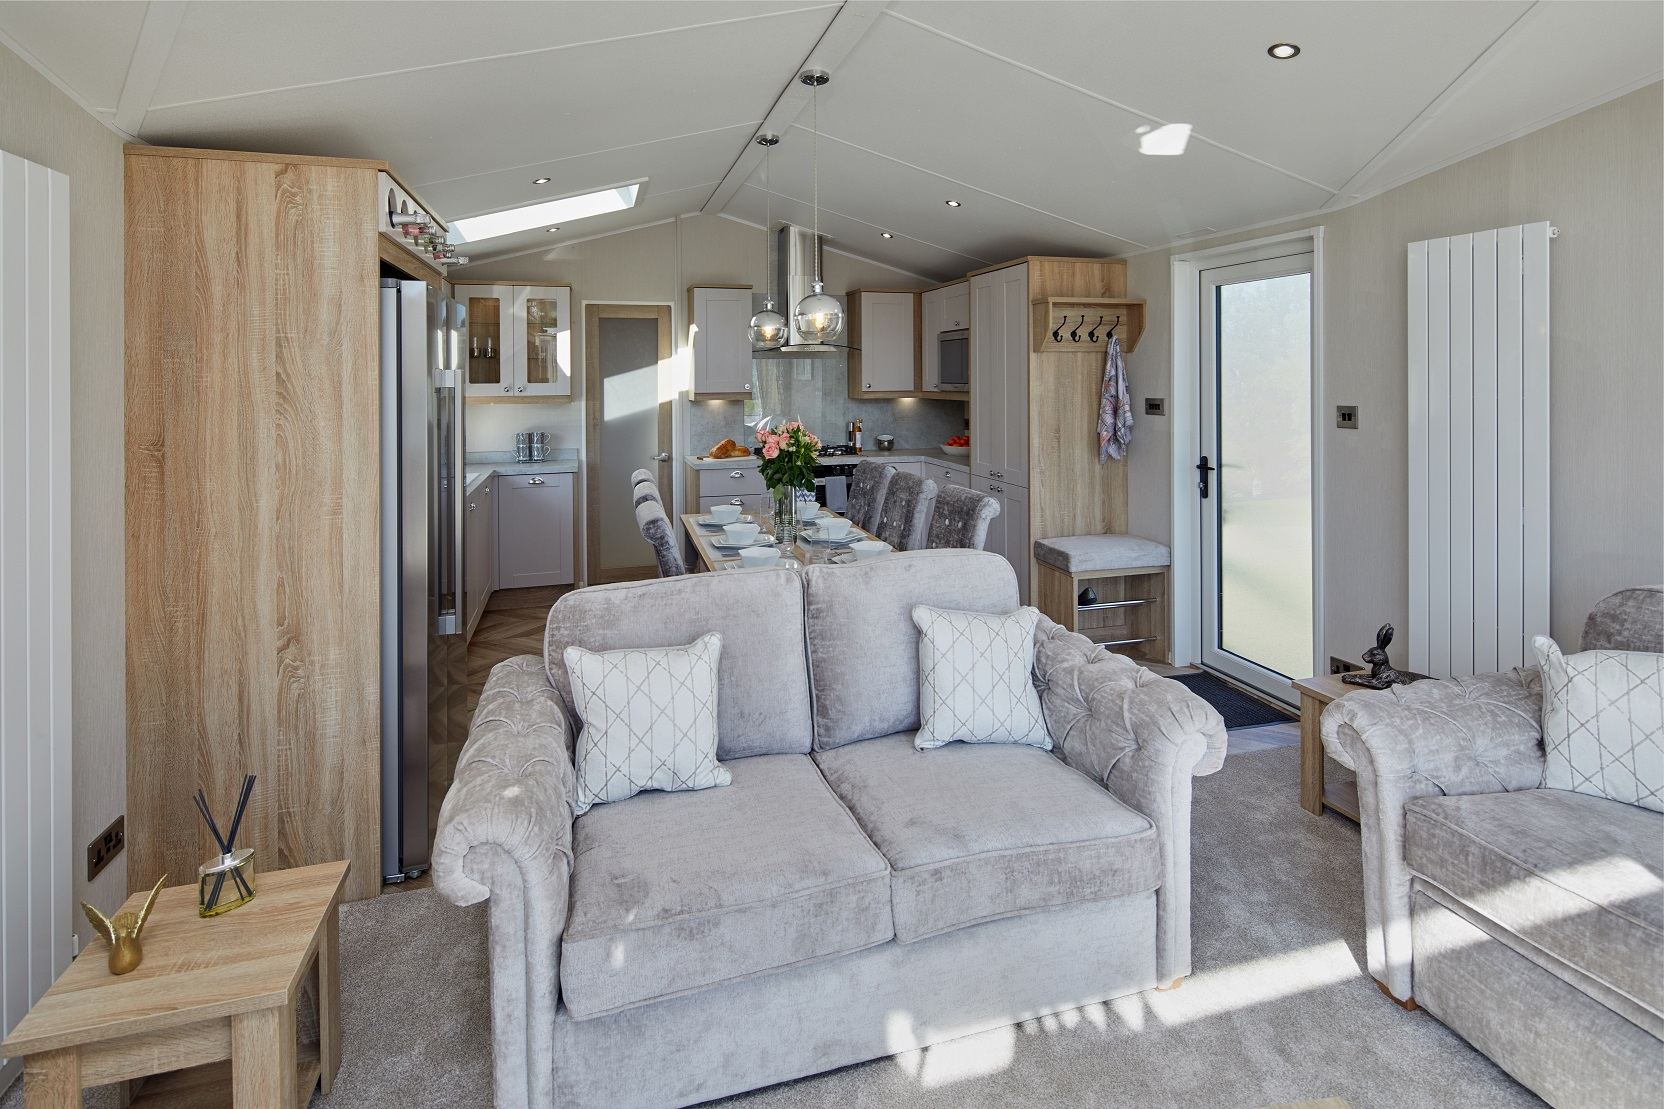 Willerby Vogue Classique: New Static Caravans and Holiday Homes for Sale, Clifton, Morpeth Large Image 2